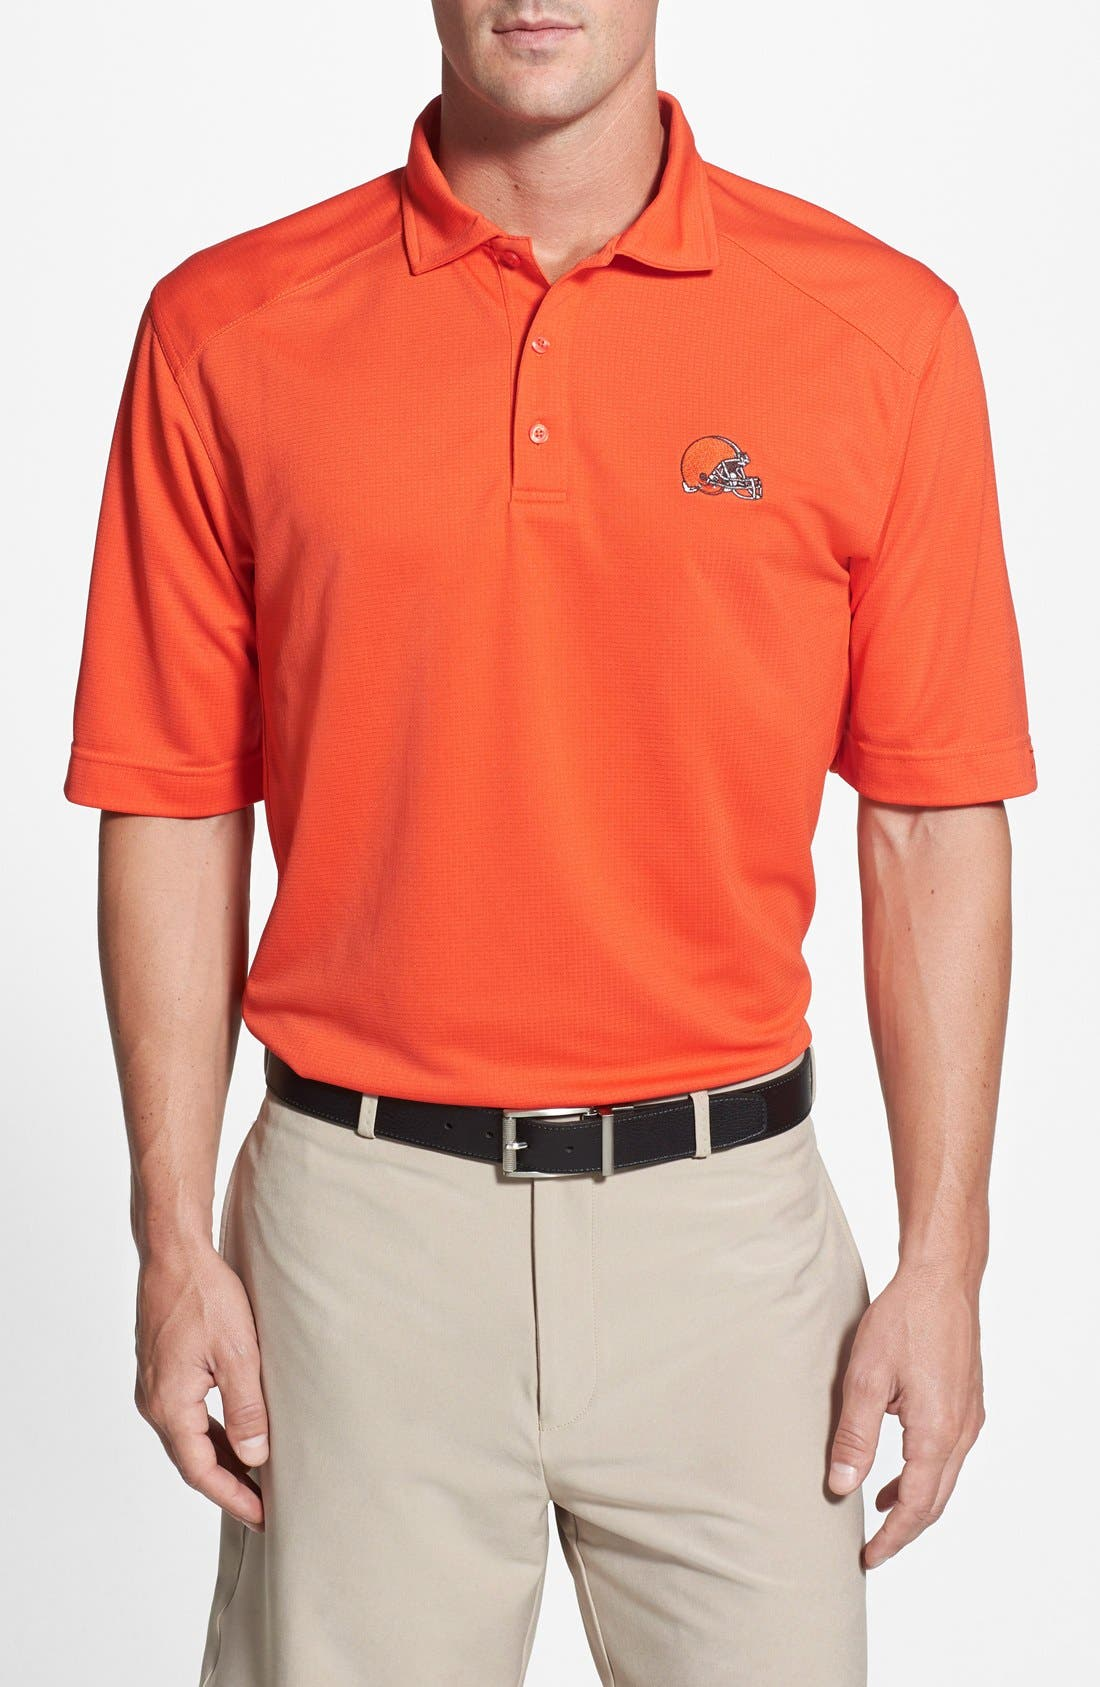 Main Image - Cutter & Buck Cleveland Browns - Genre DryTec Moisture Wicking Polo